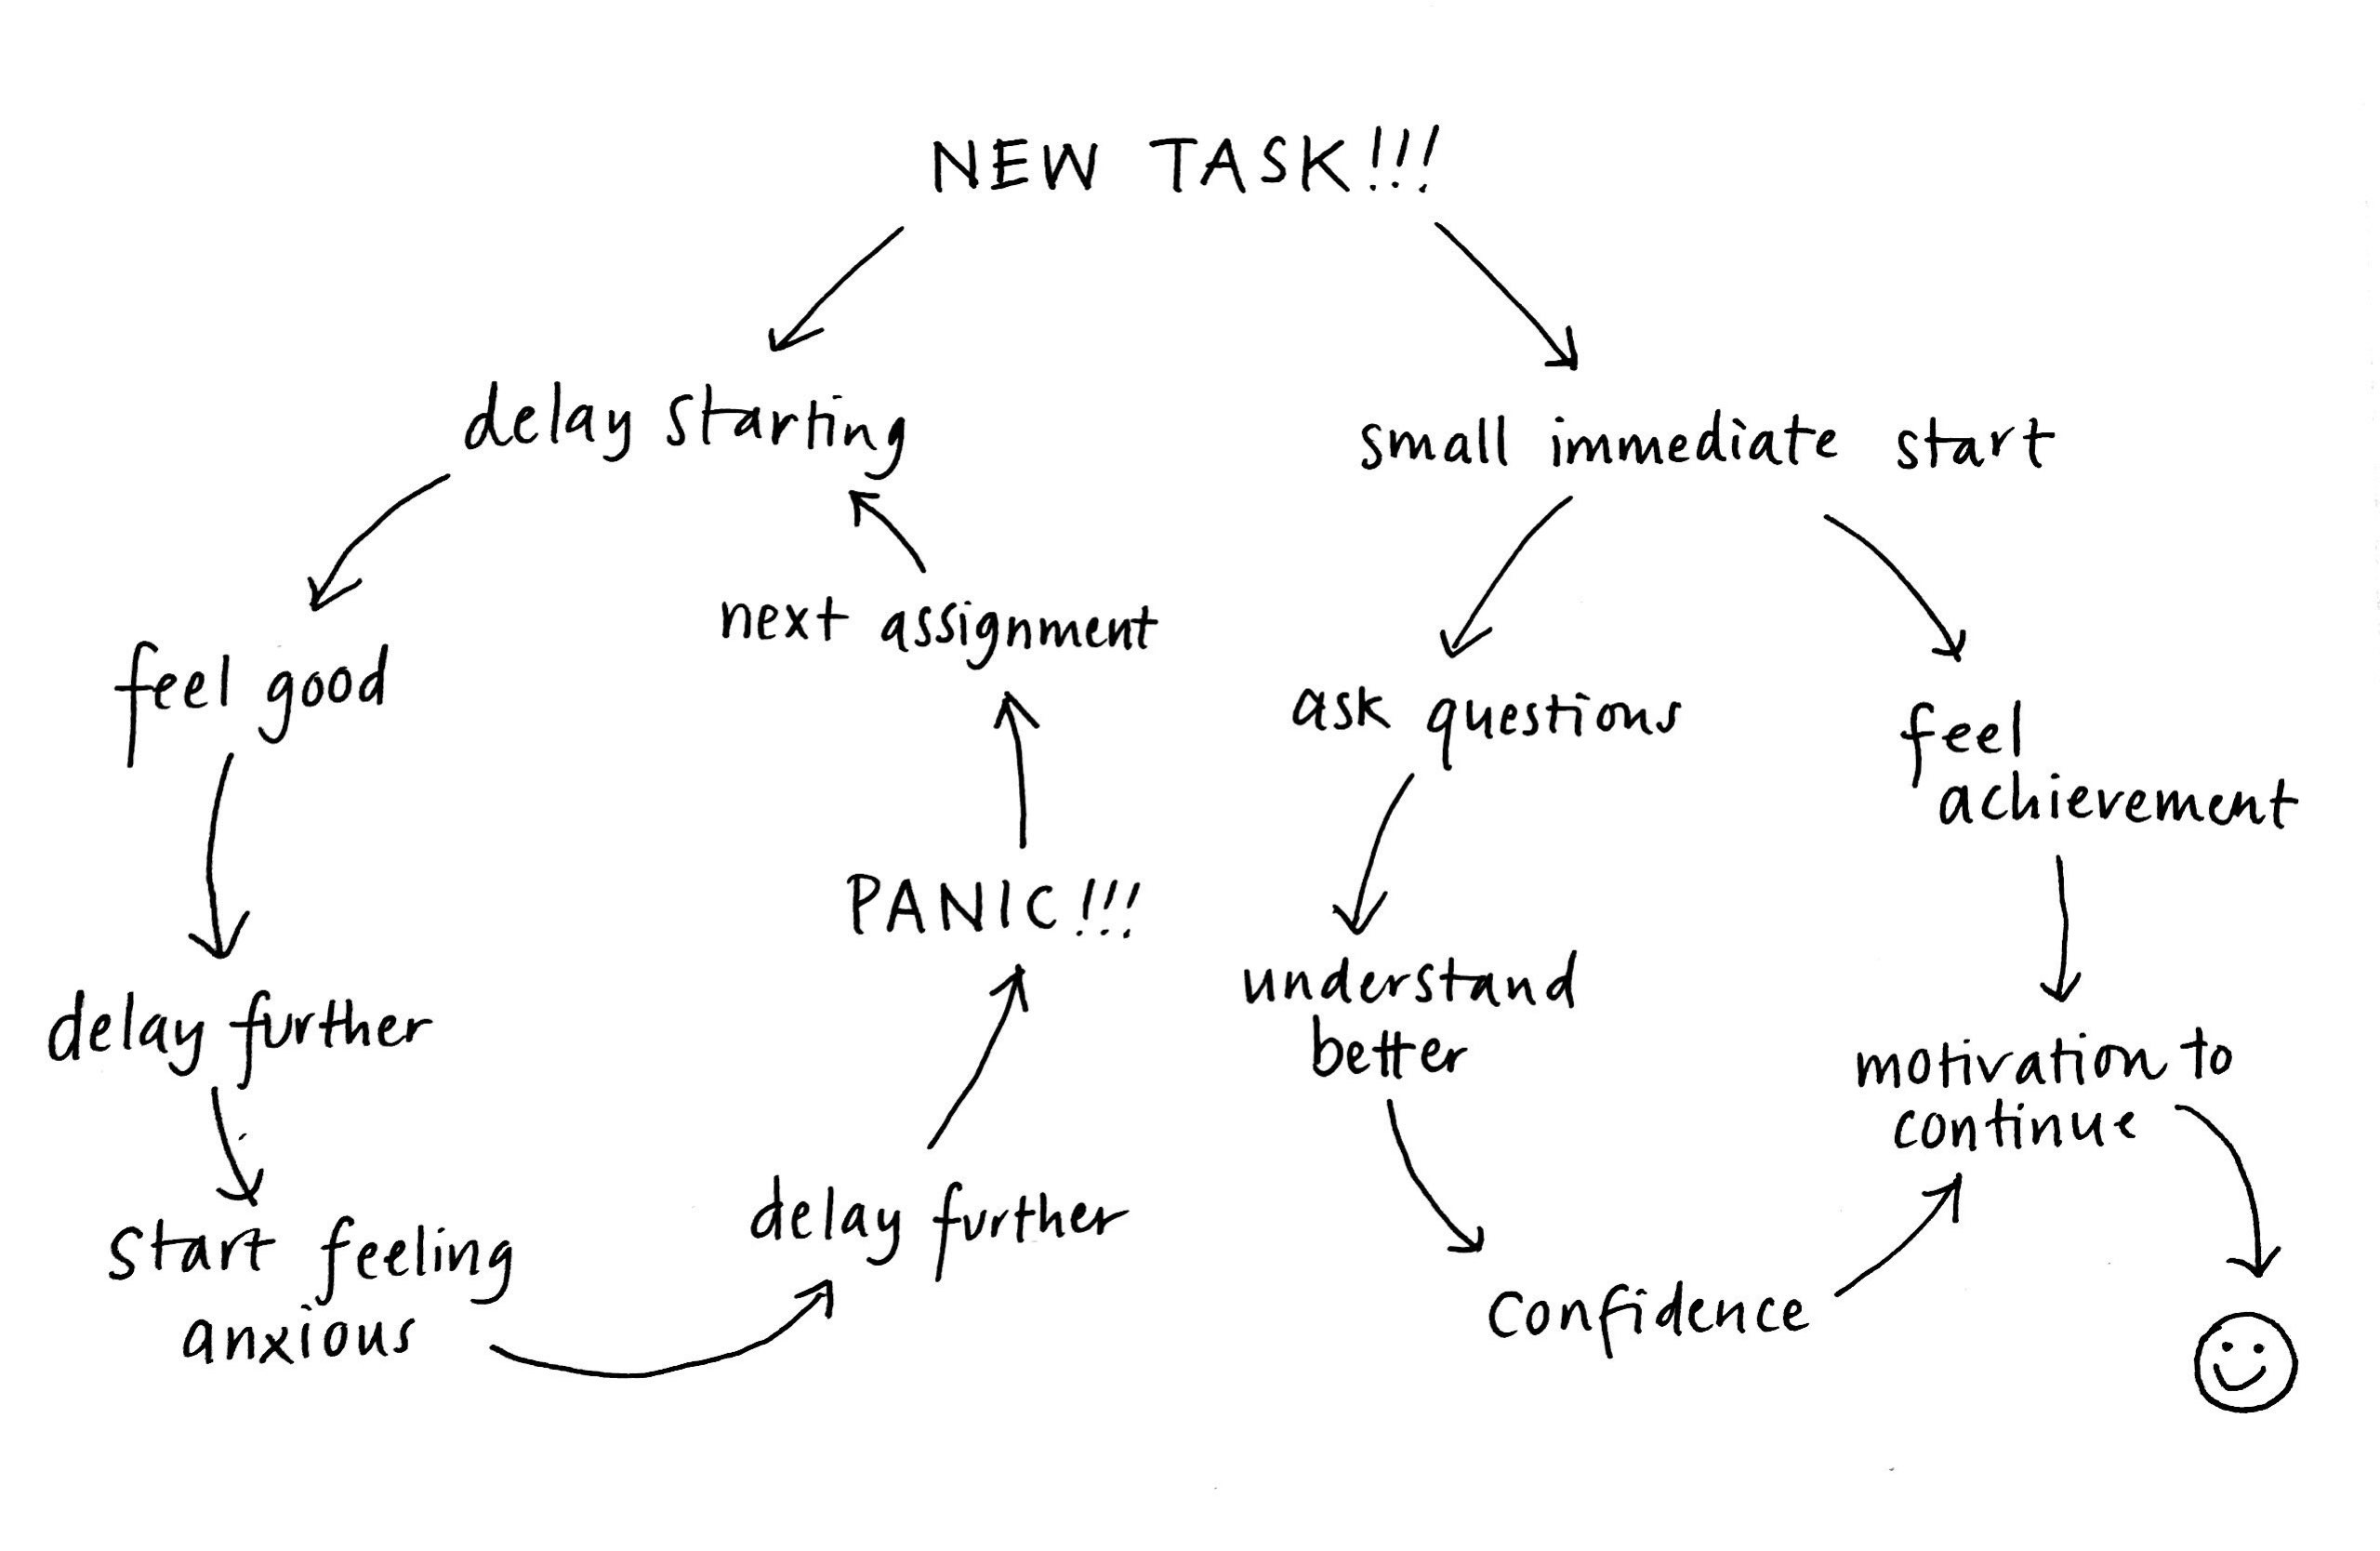 diagram of what happens when you procrastinate versus when you immediately start a task